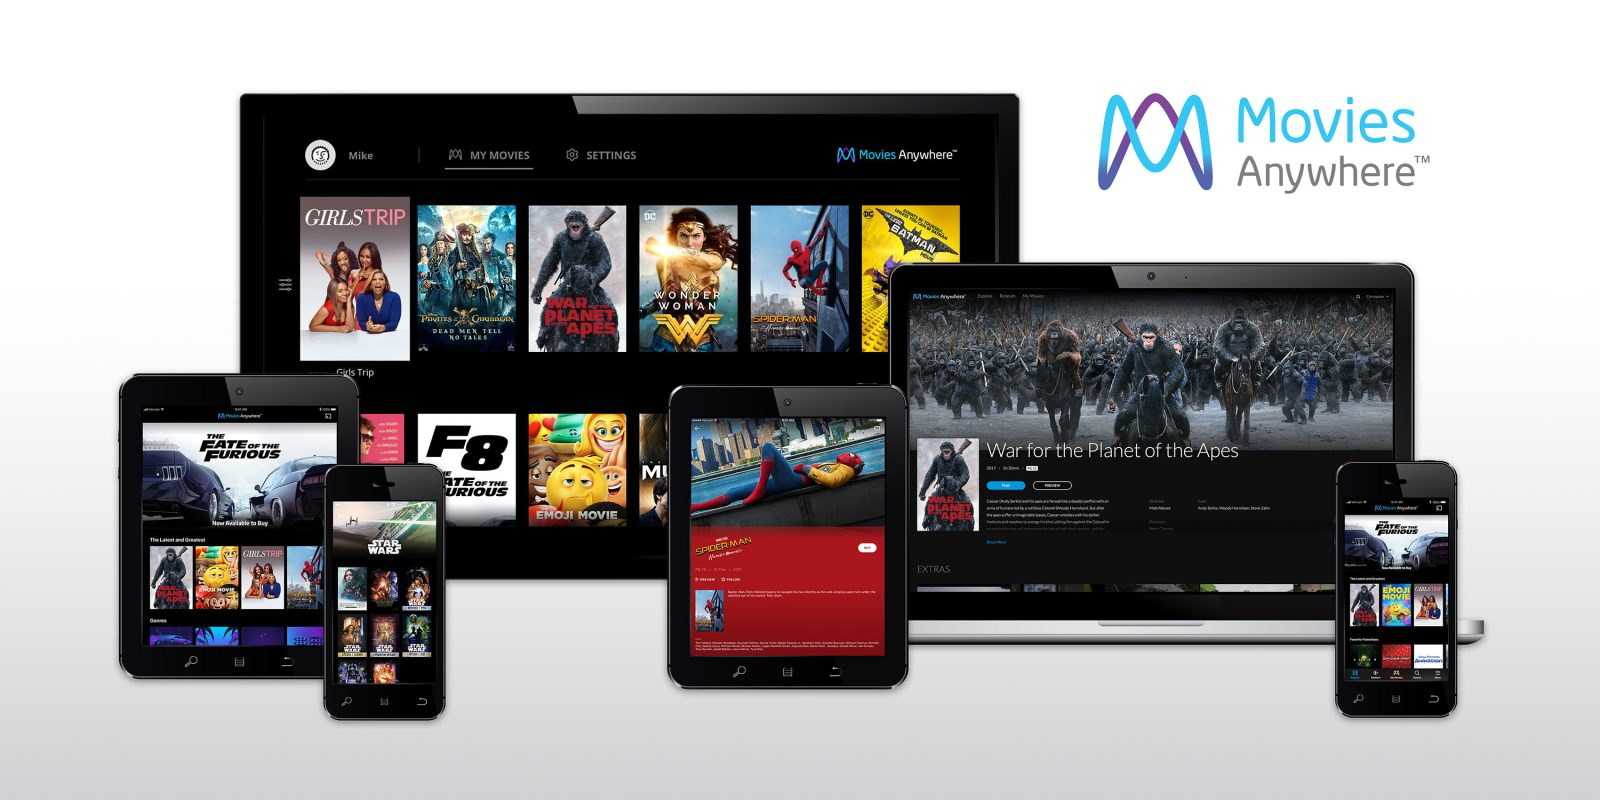 Movies Anywhere' will combine movie libraries across iTunes, Google